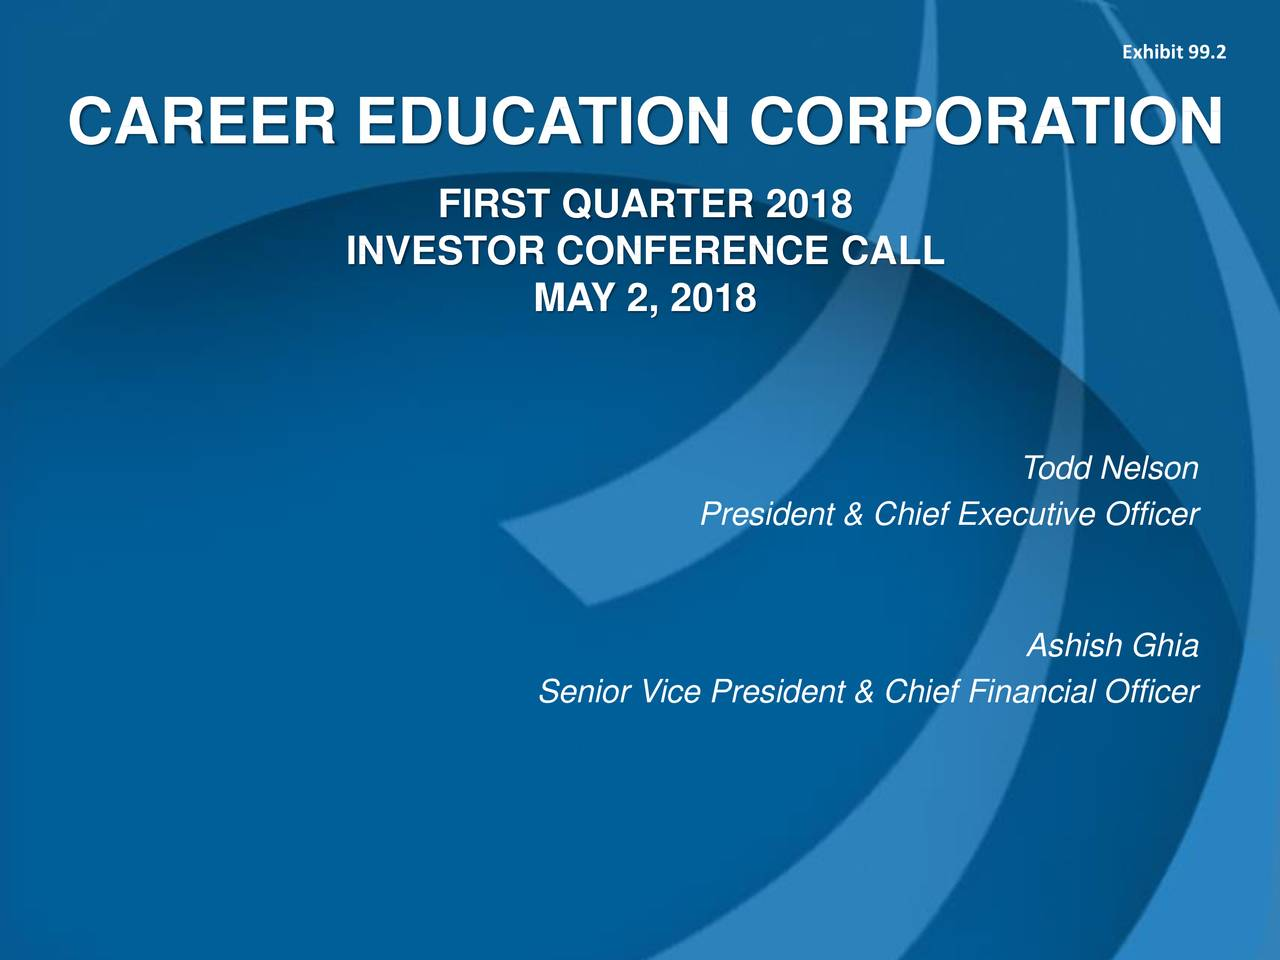 CAREER EDUCATION CORPORATION FIRST QUARTER 2018 INVESTOR CONFERENCE CALL MAY 2, 2018 Todd Nelson President & Chief Executive Officer Ashish Ghia Senior Vice President & Chief Financial Officer